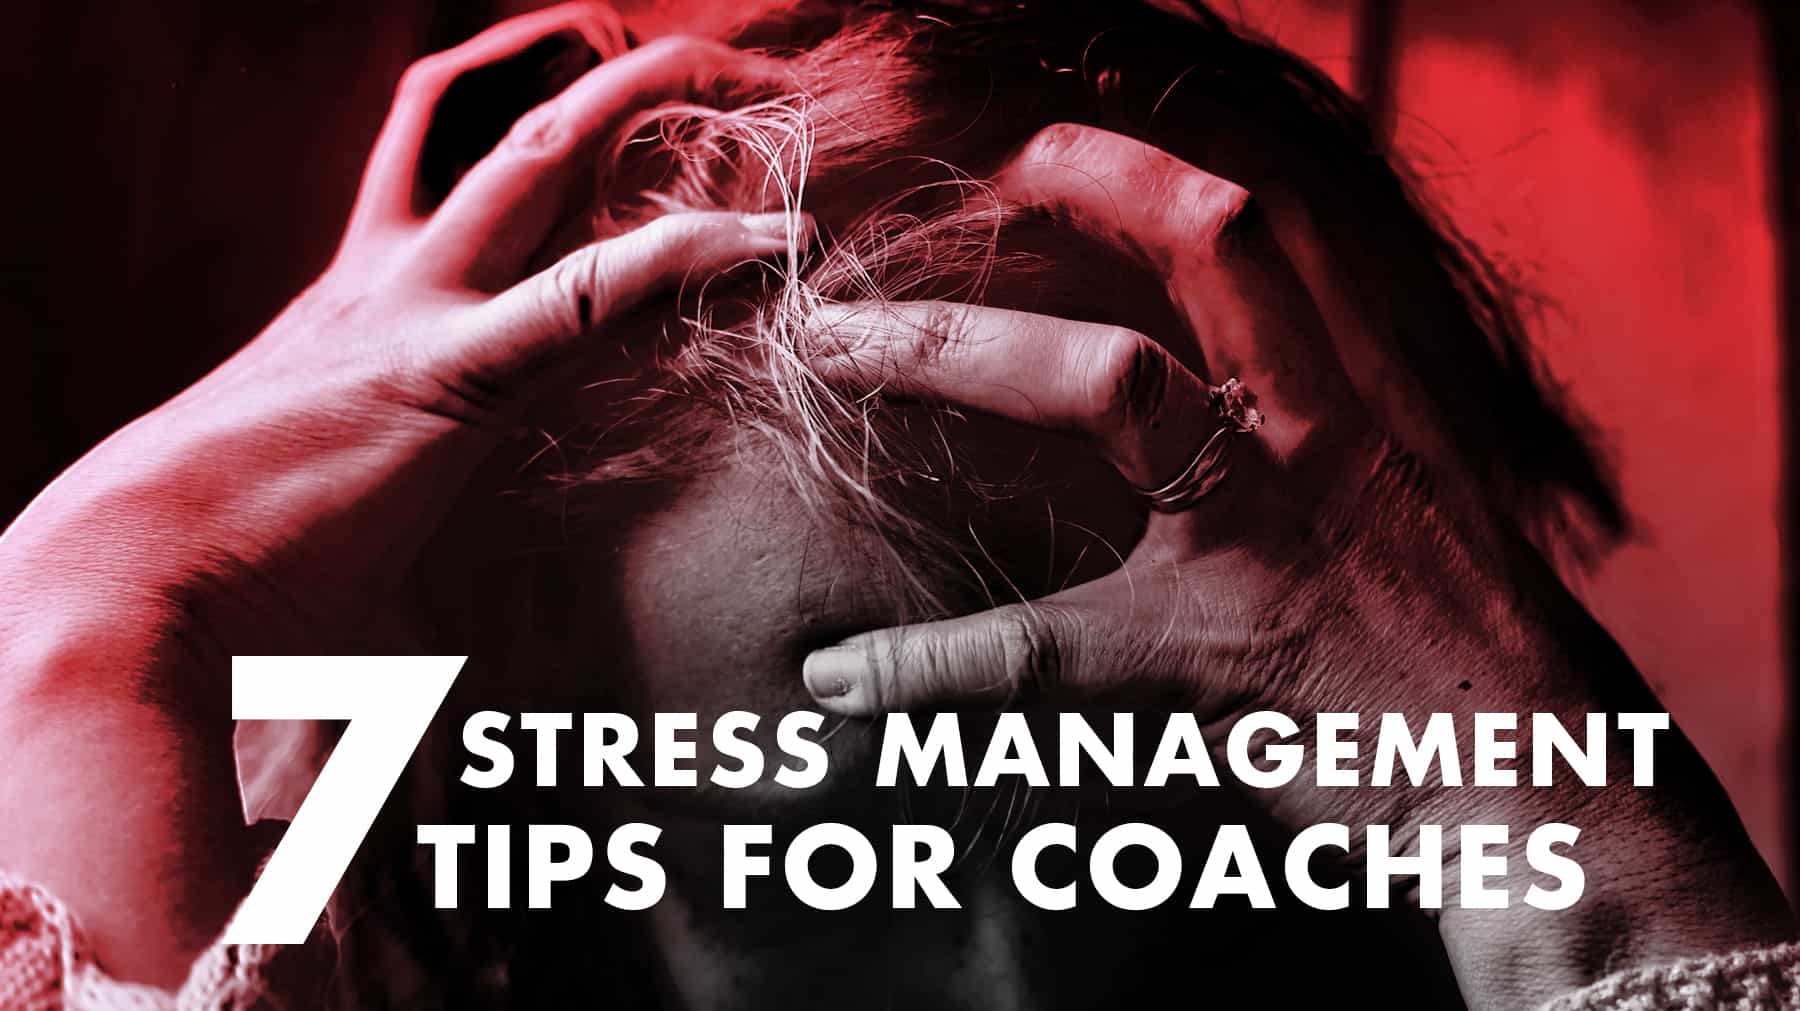 7 Stress Management Tips For Coaches